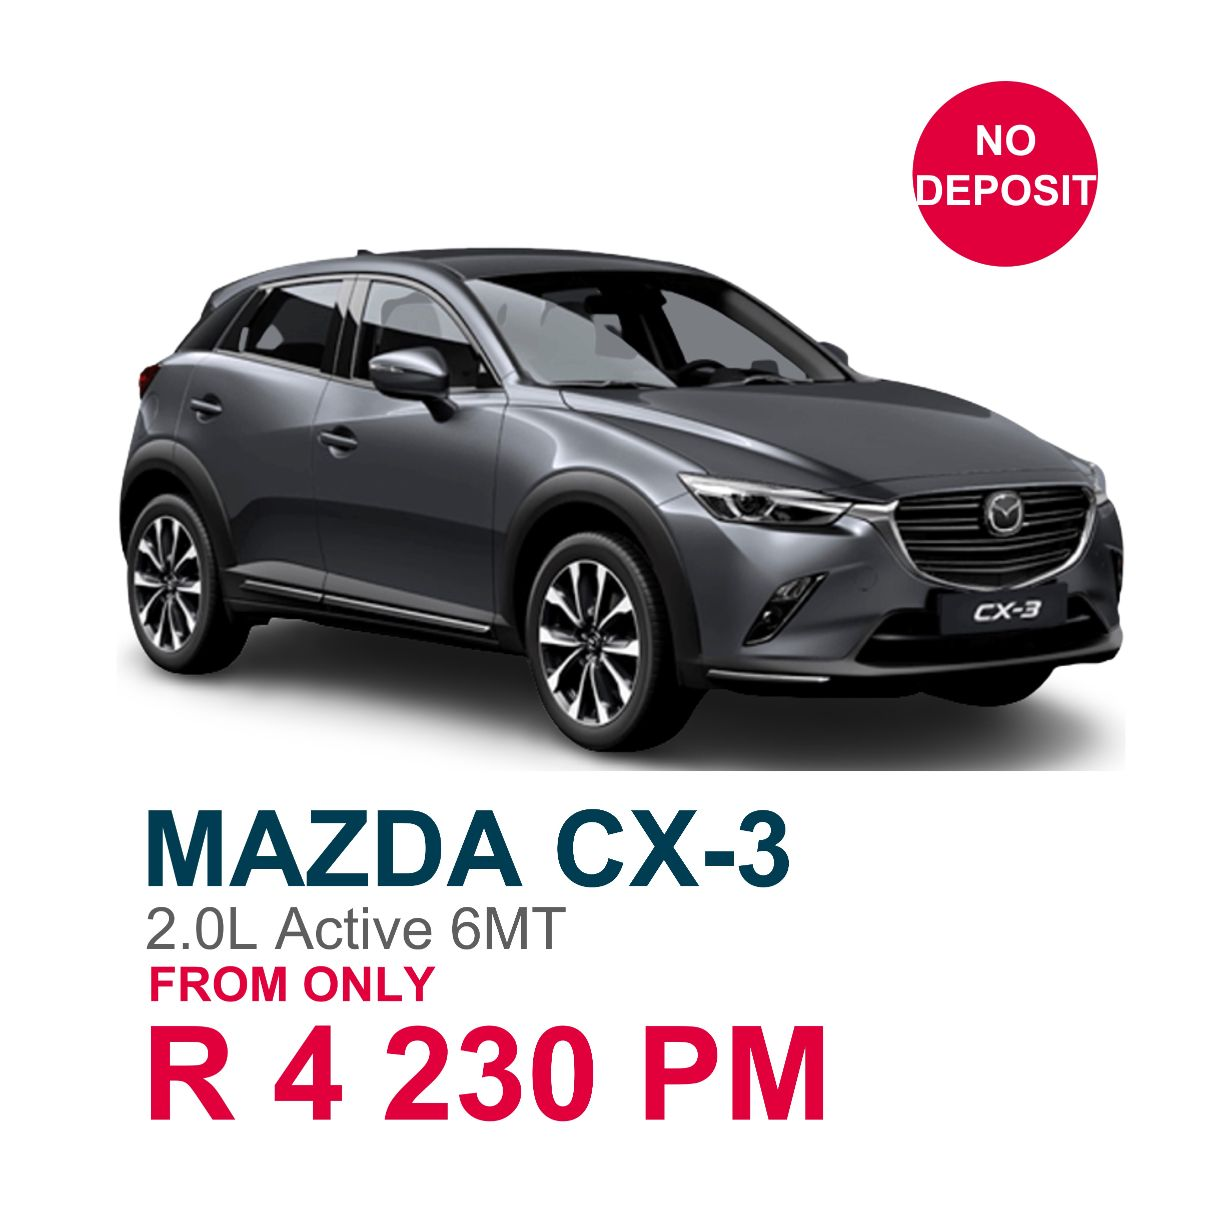 mazda-cx-3-2-0l-active-6mt-from-only-r4-230pm